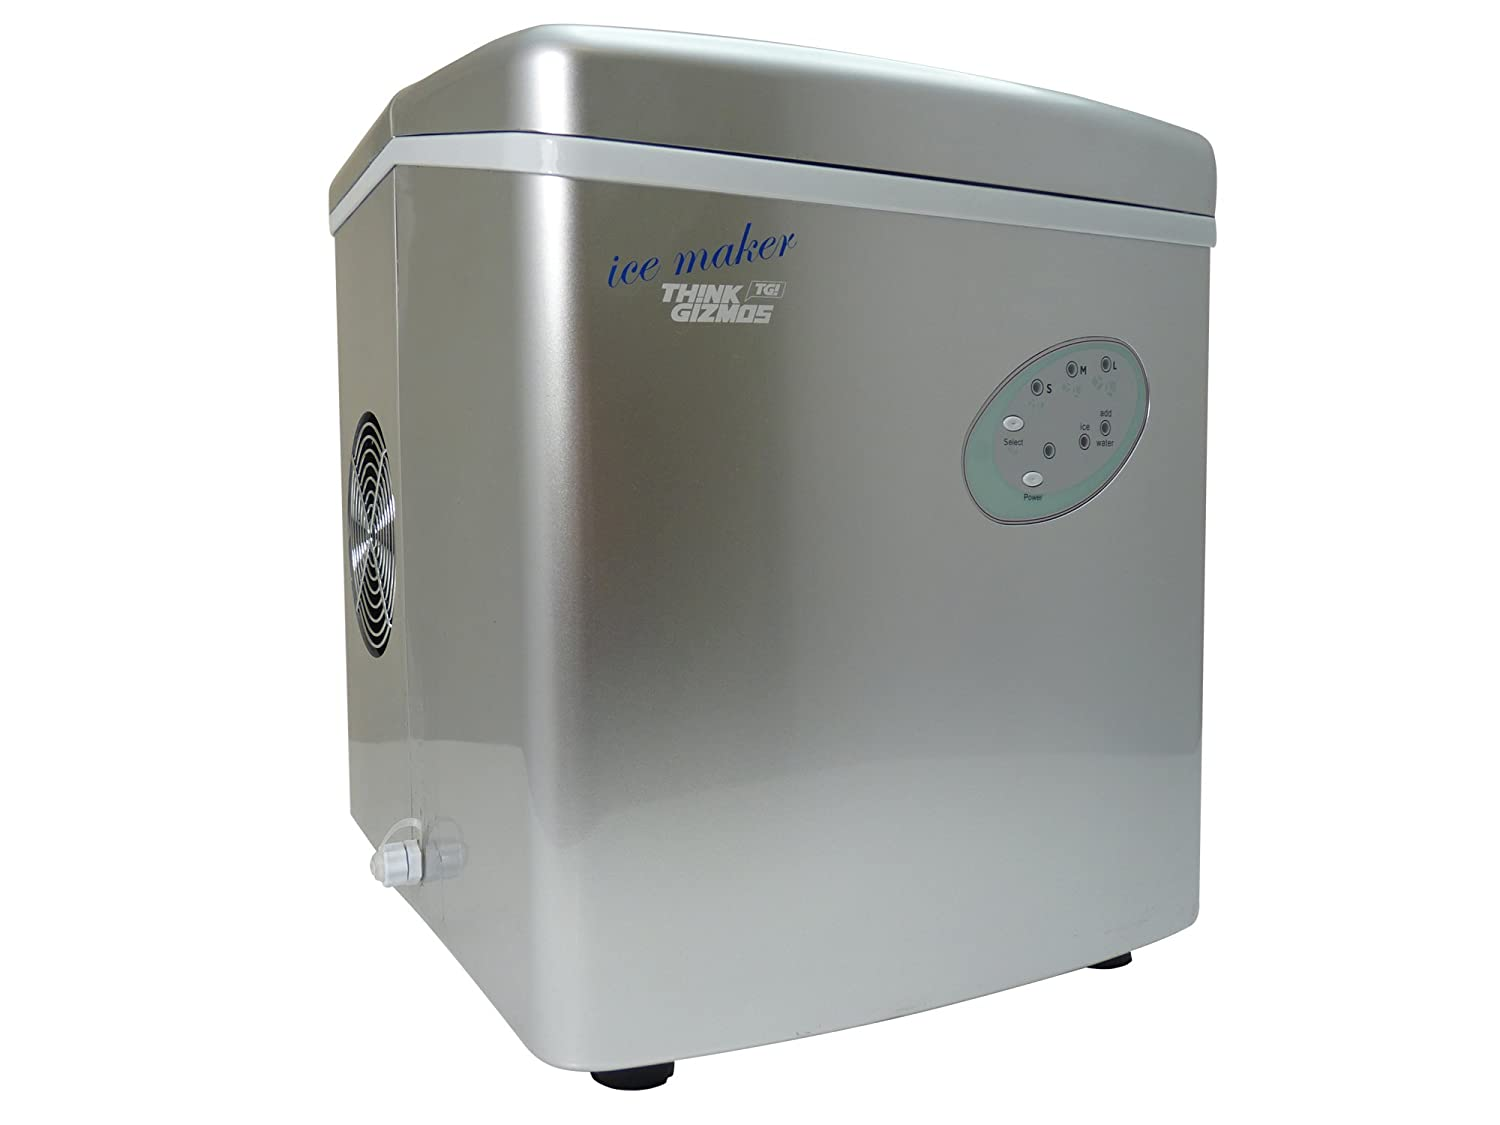 Ice Maker Machine Counter Top New Compact Model No Sub Zero Wiring Diagram Plumbing Required 15kg In 24 Hours By Thinkgizmos Trademark Protected